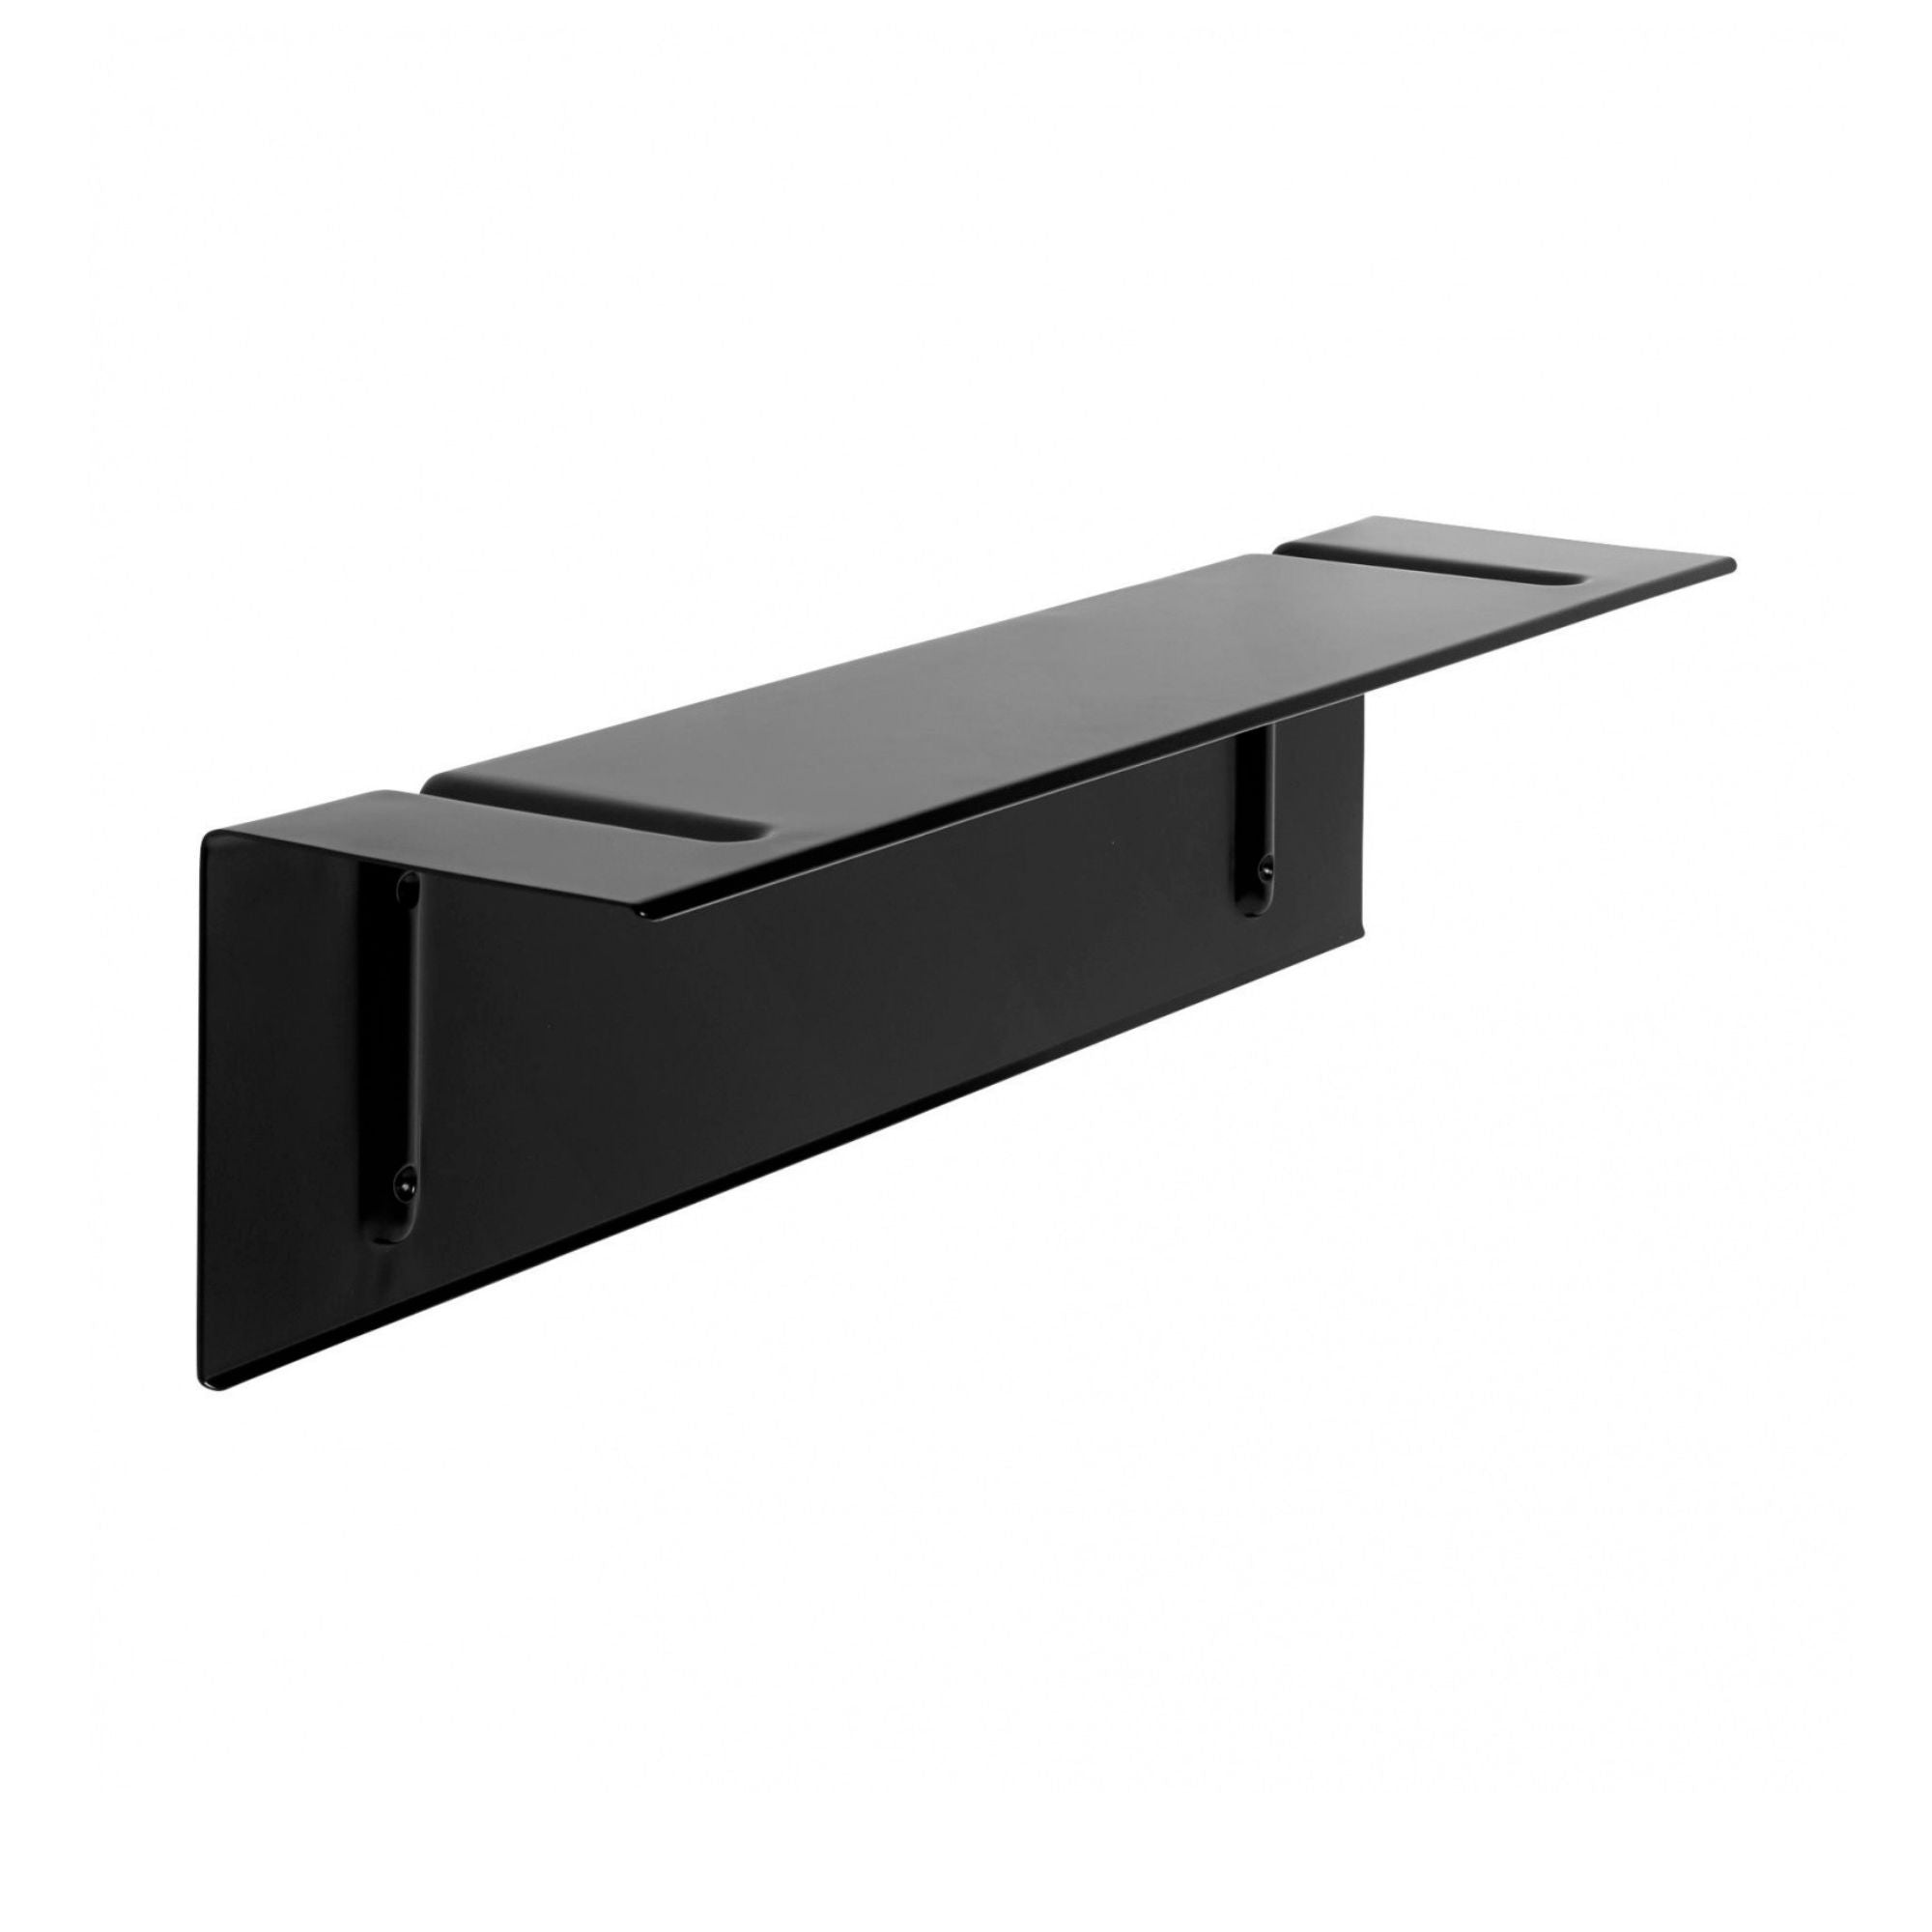 Hay Brackets Incl. Wall Shelf L60 , Black